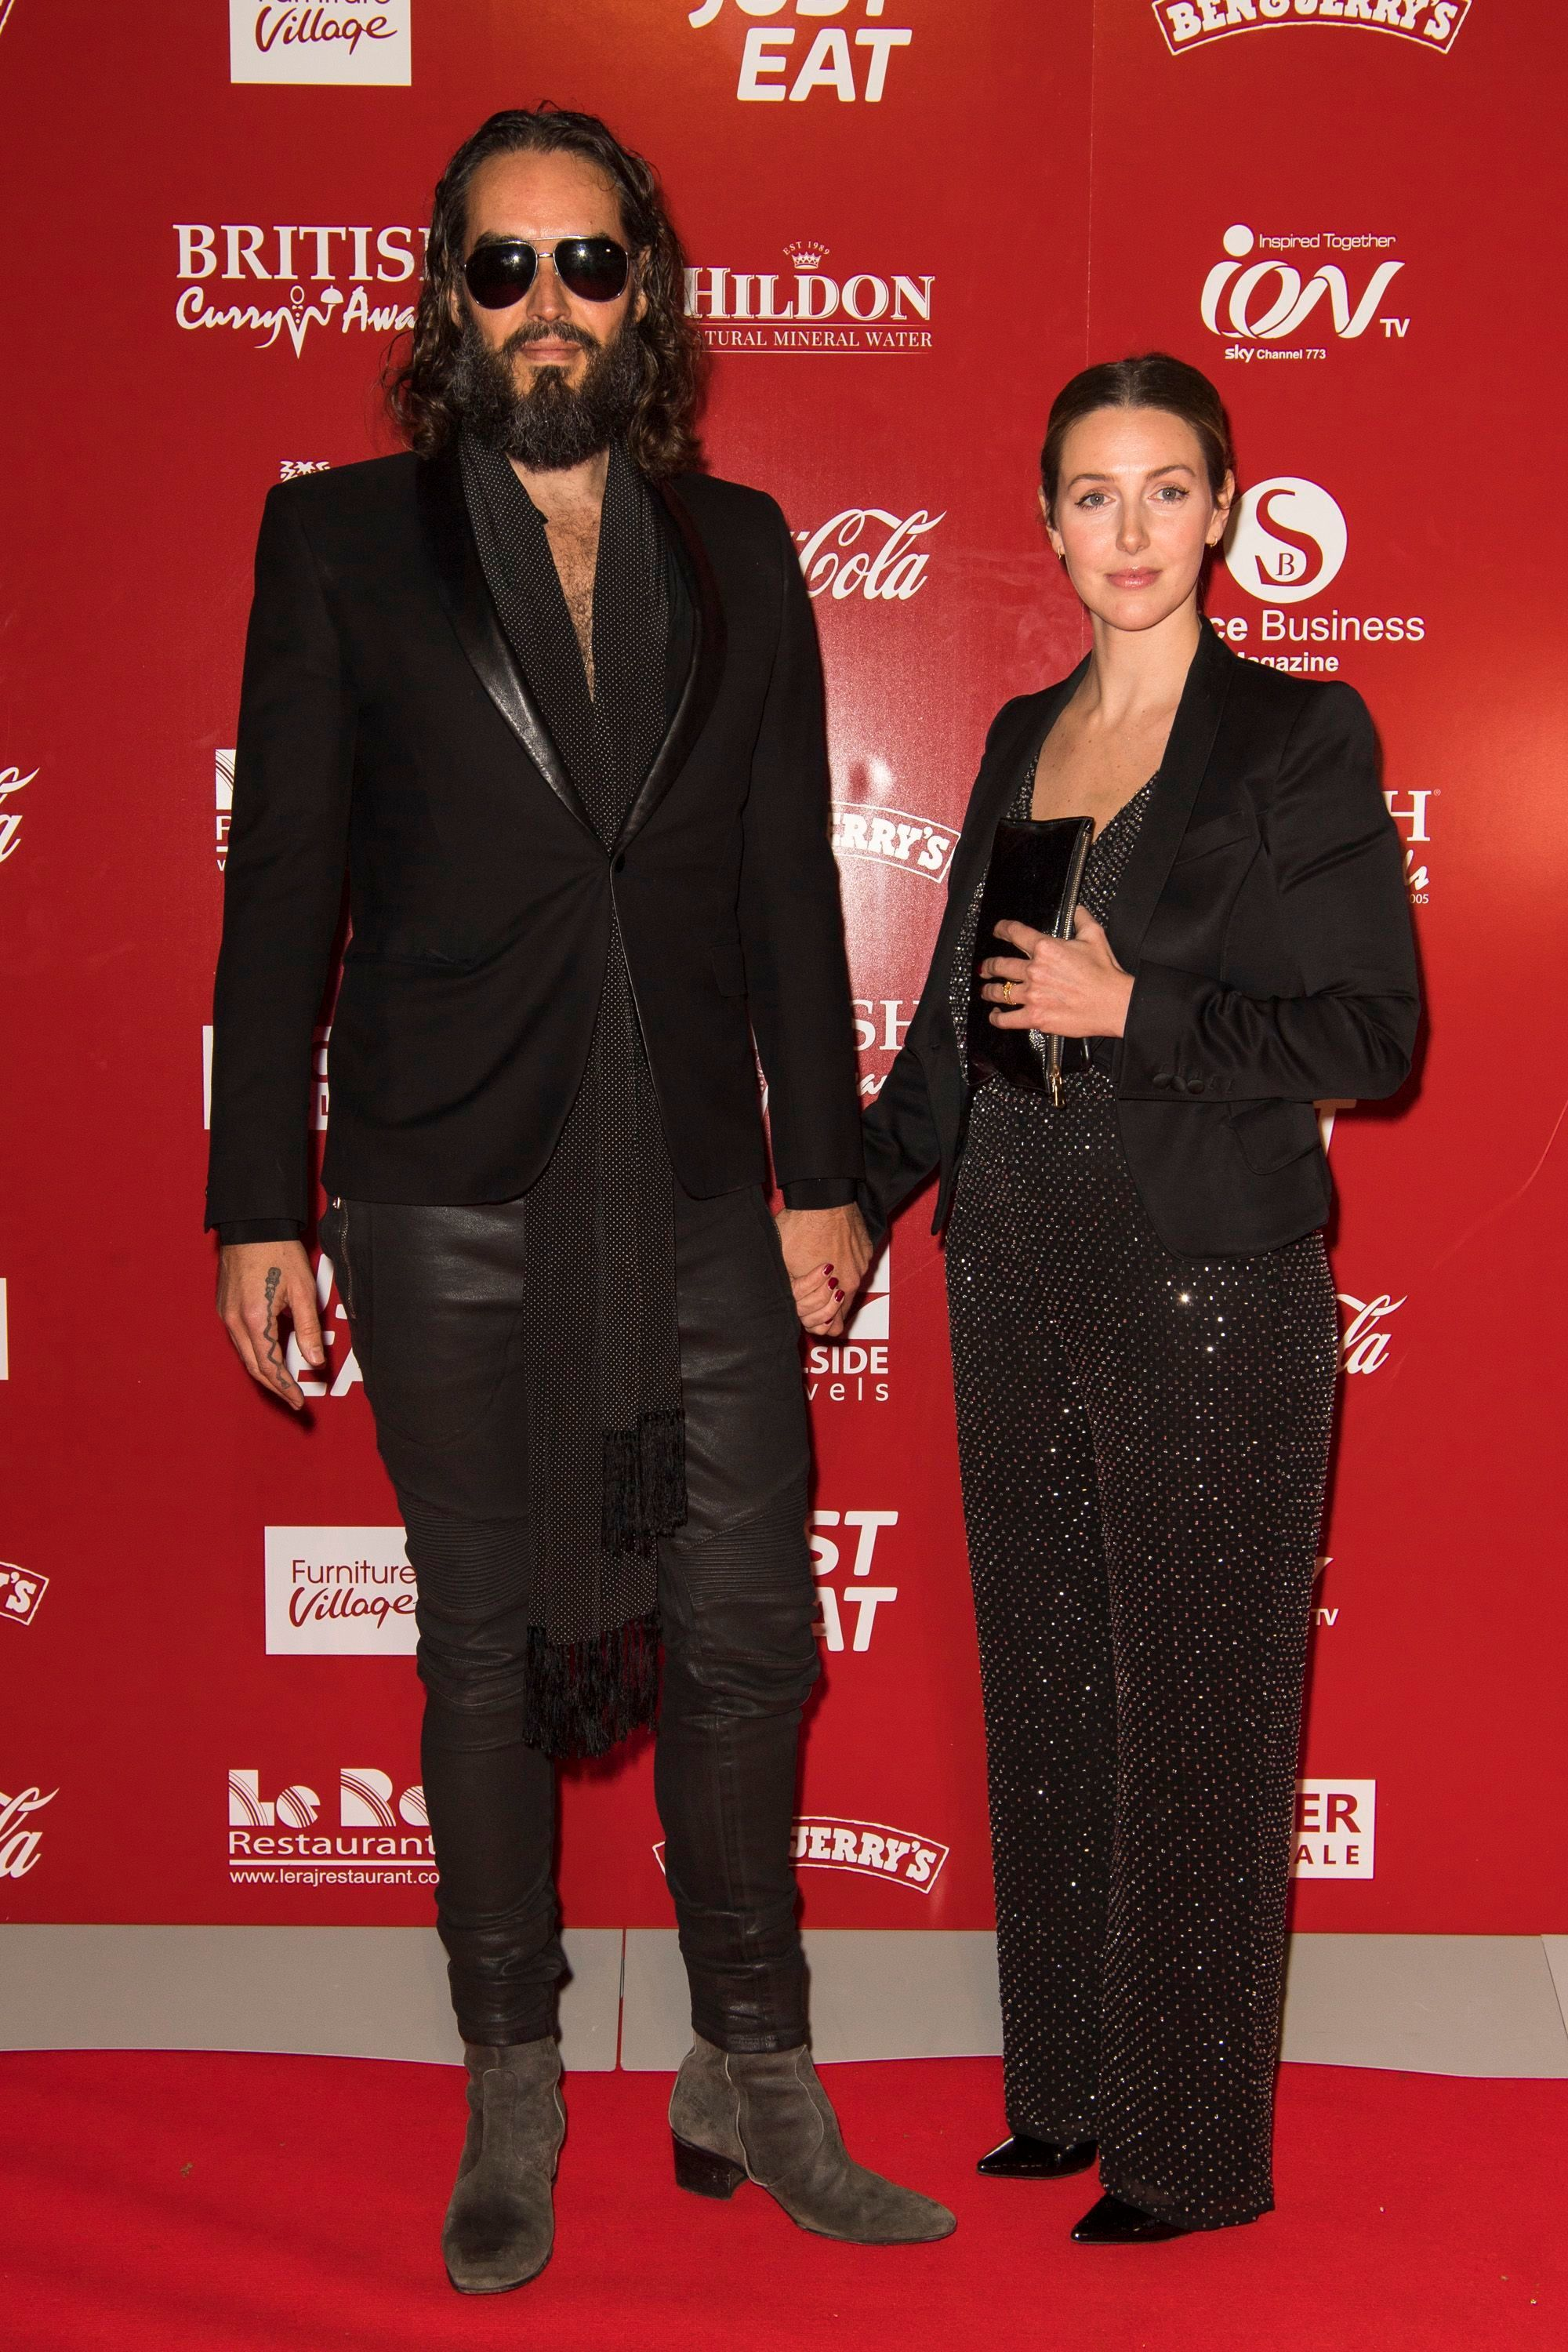 Russell Brand and Laura Gallacher attend the British Curry Awards in London on Nov. 26, 2018.